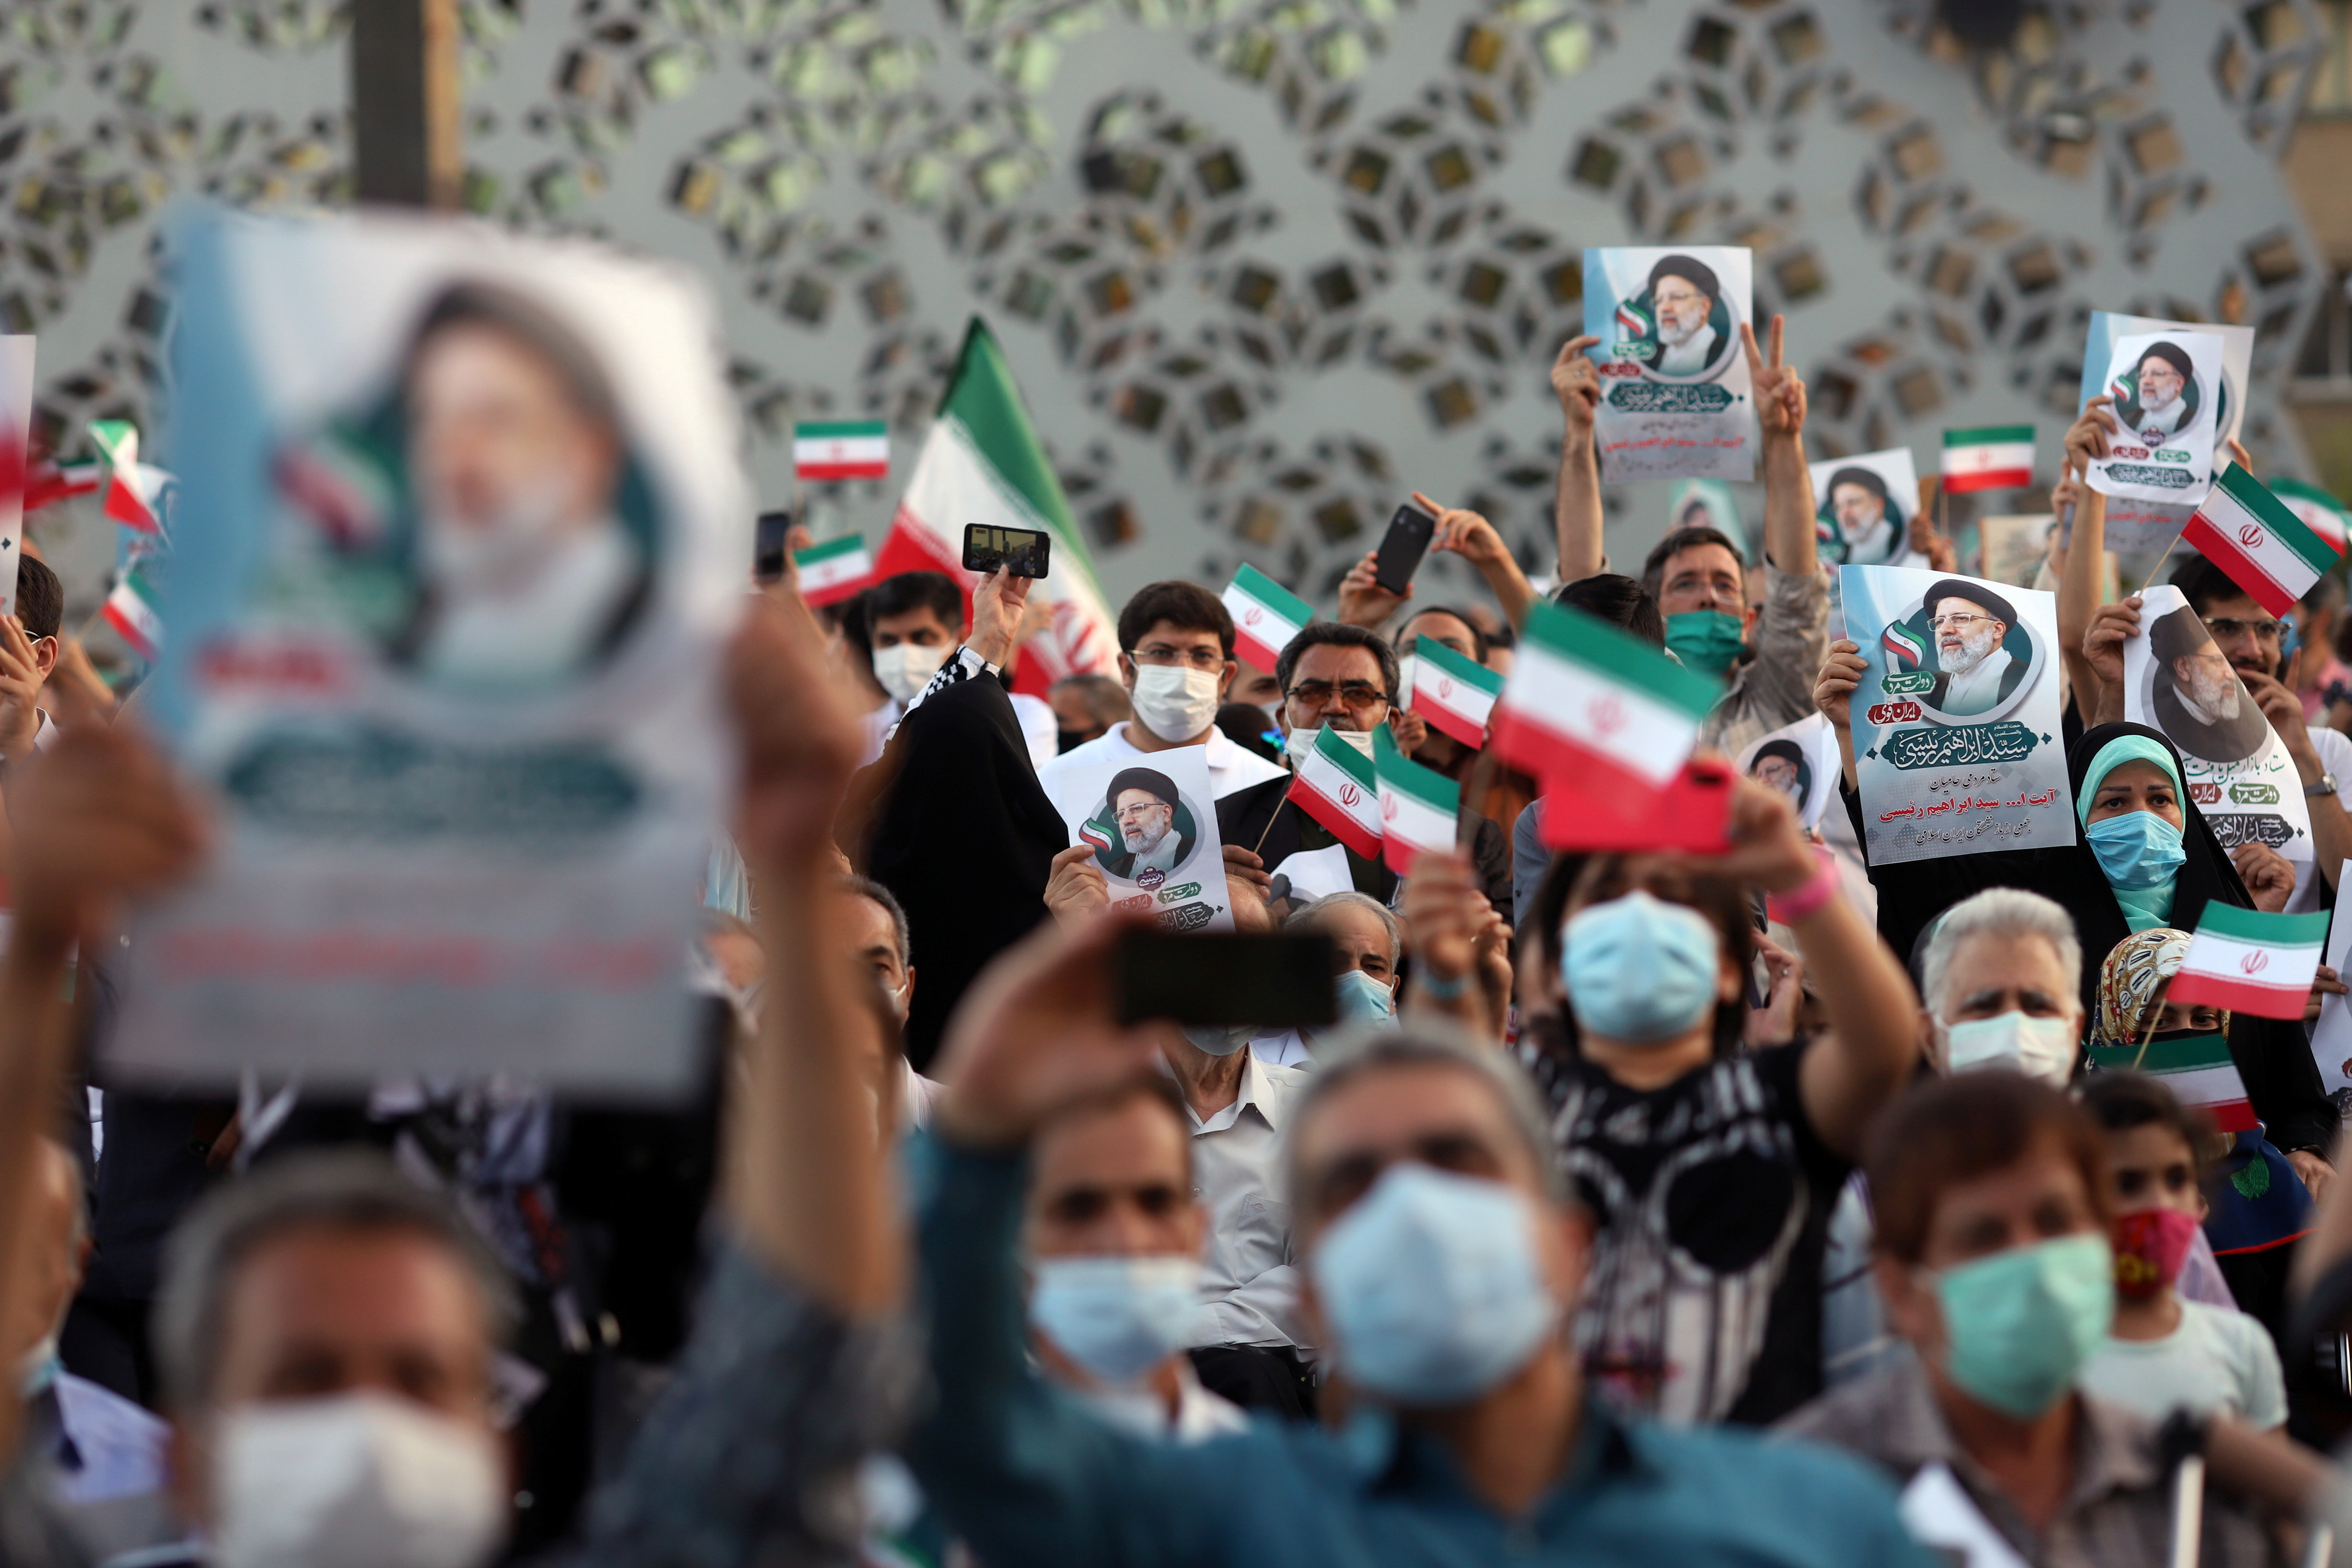 Supporters of Ebrahim Raisi celebrate his presidential election victory in Tehran, Iran June 19, 2021. Majid Asgaripour/WANA (West Asia News Agency) via REUTERS